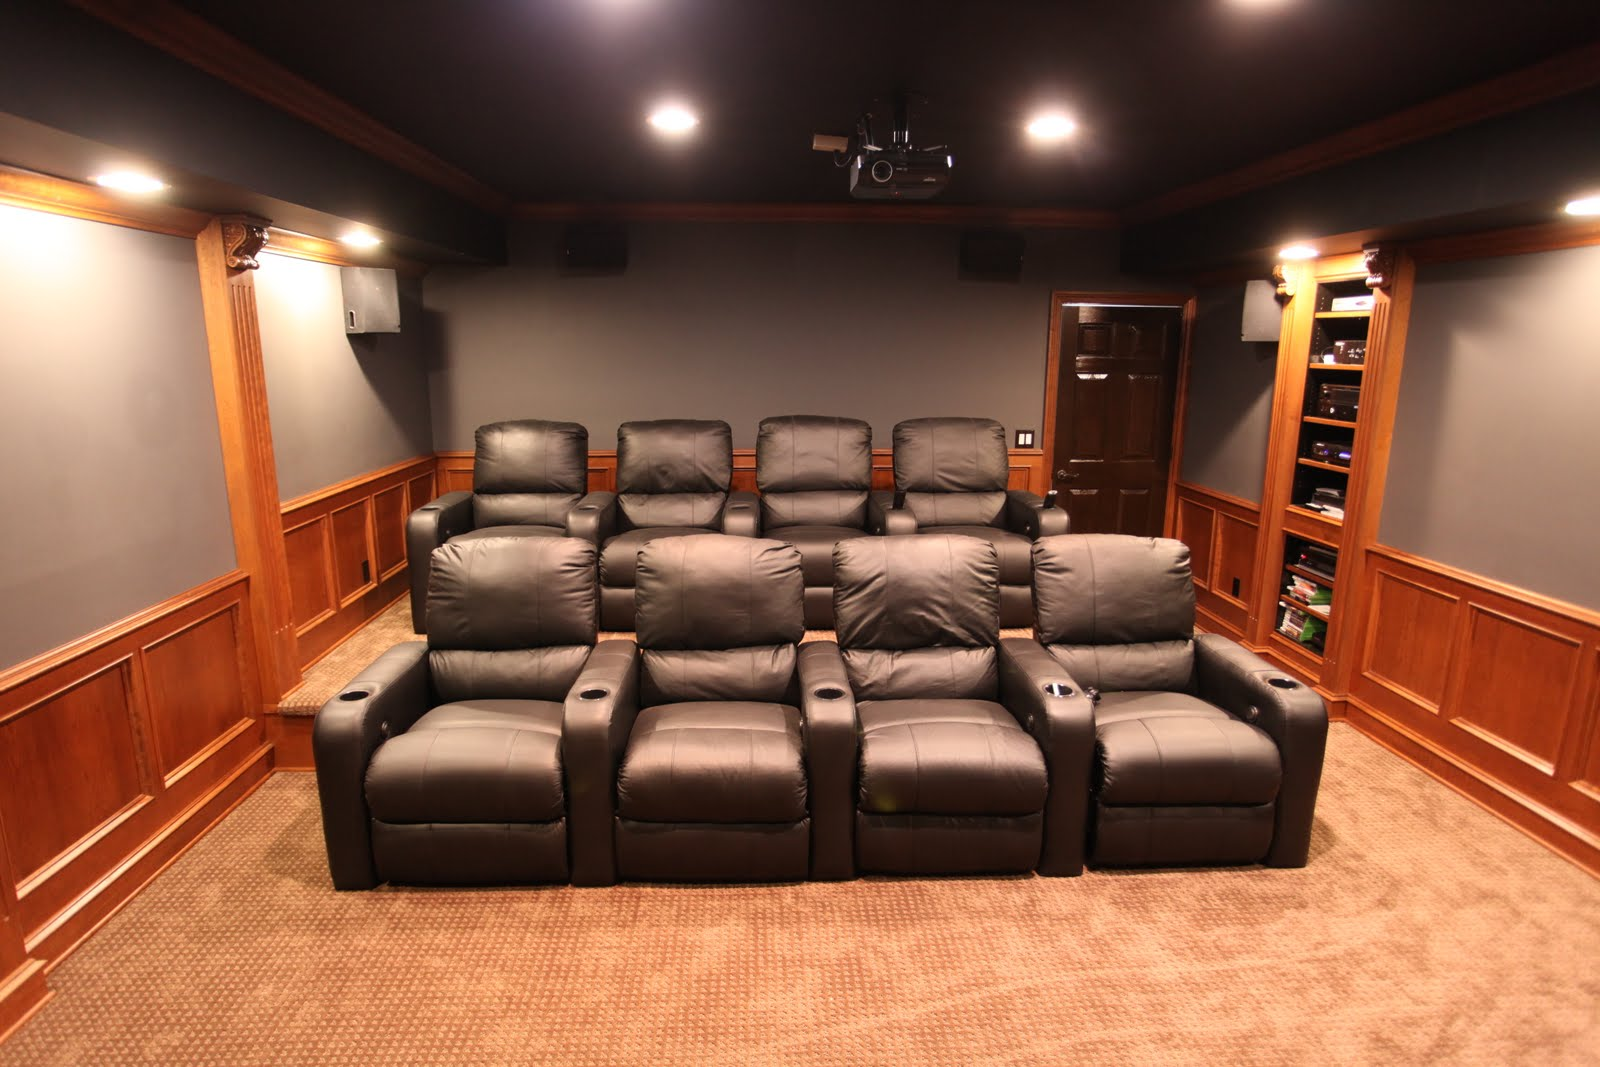 10 X 10 Home Theater Room Design And Ideas